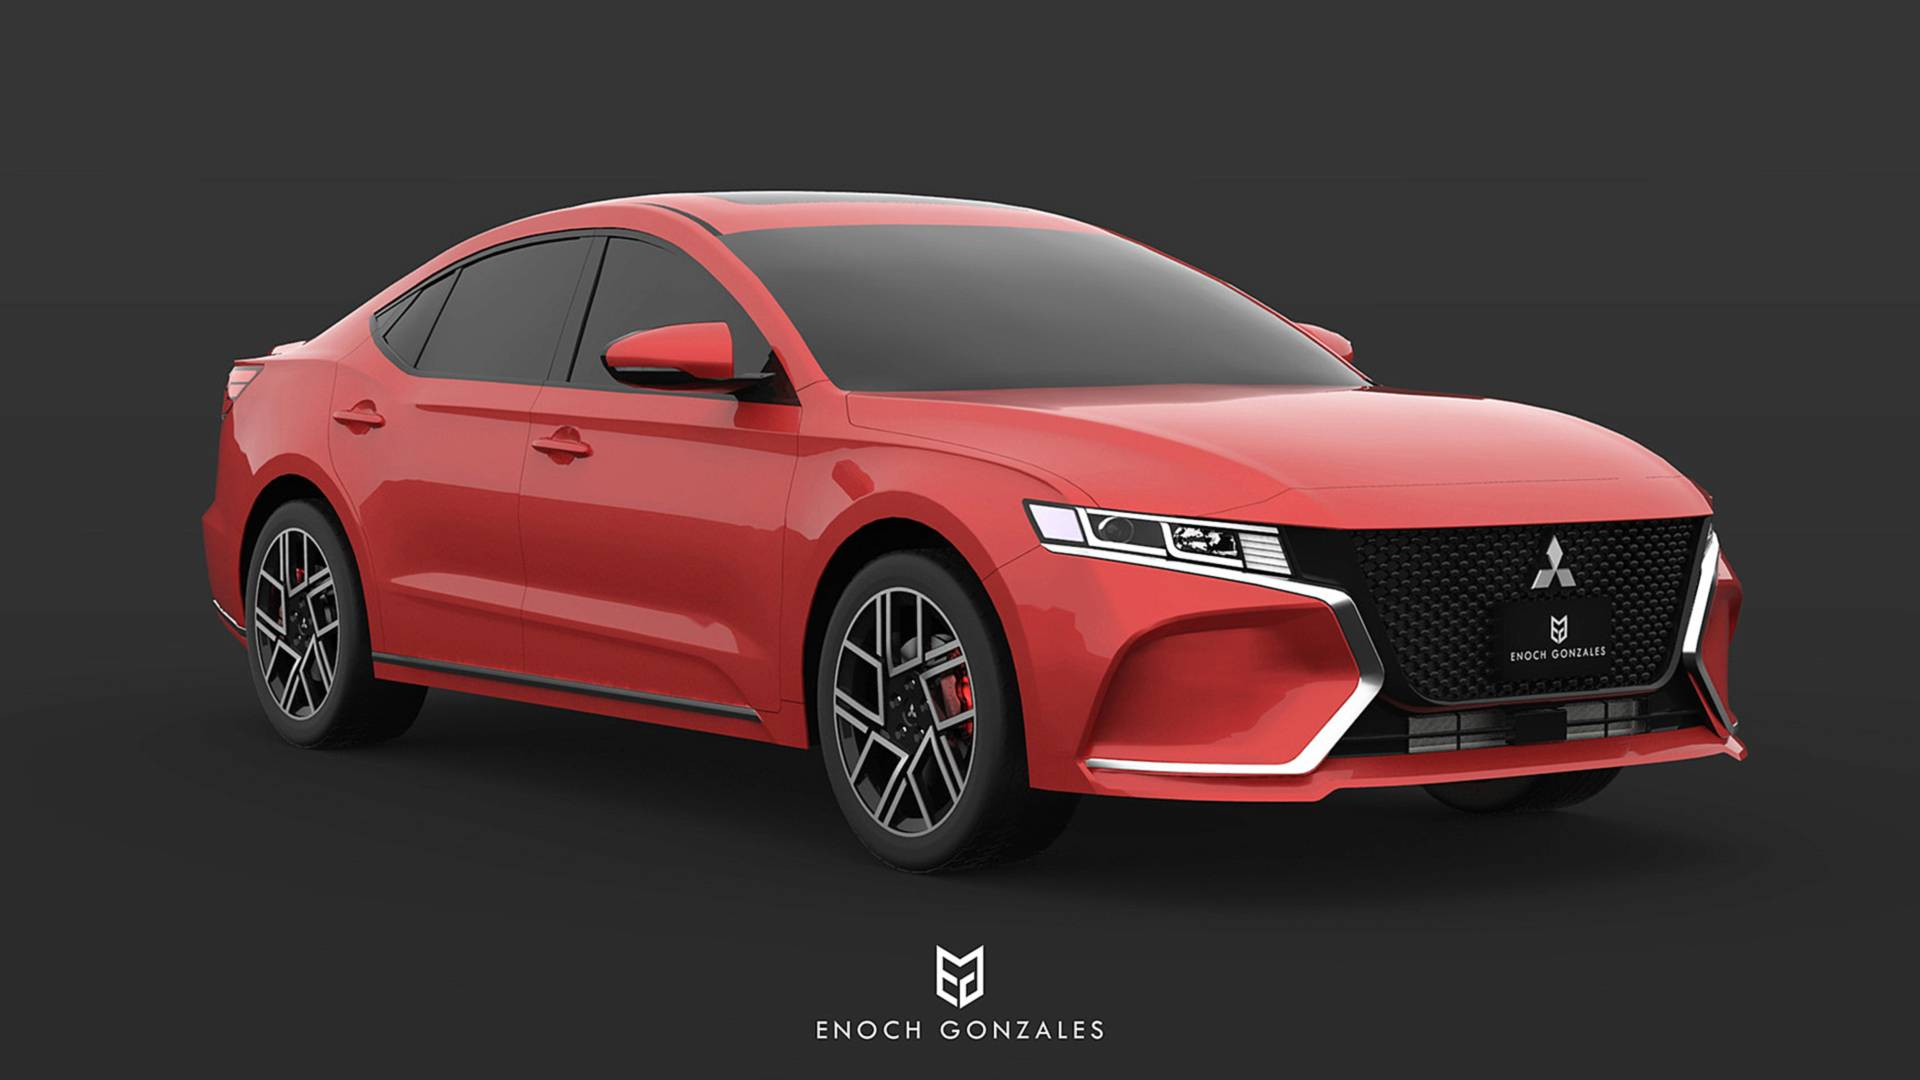 21 New 2020 Mitsubishi Galant Release Date